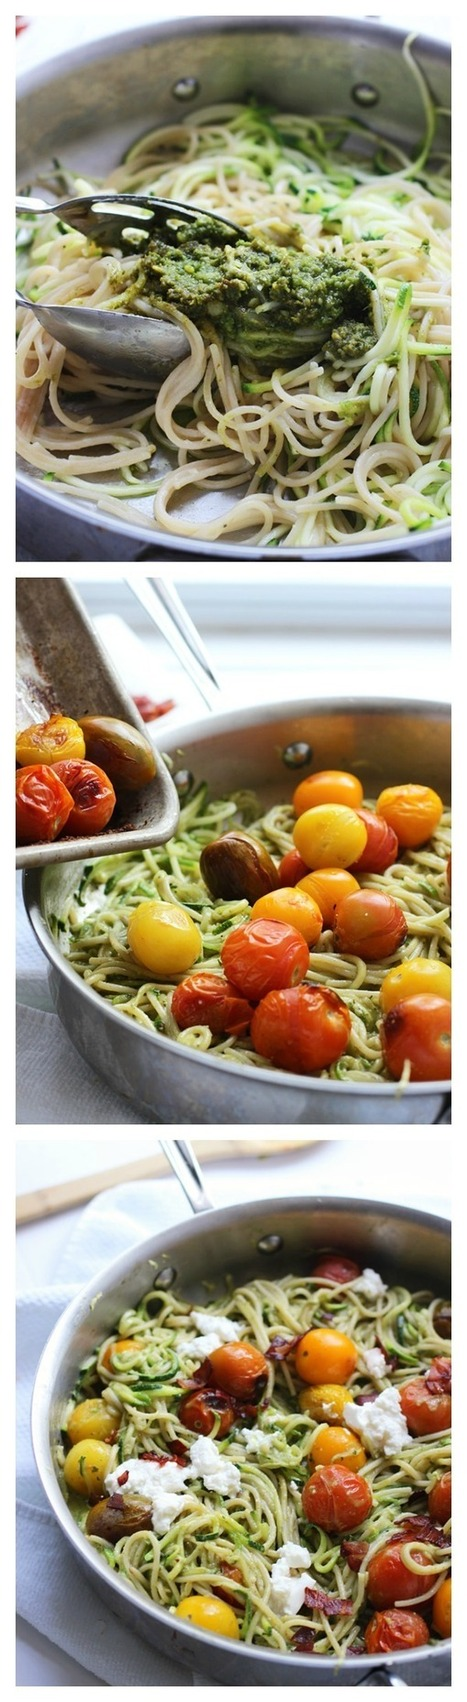 #HealthyRecipe : Whole-Wheat and Zucchini Spaghetti with Basil Almond Pesto, Blistered Tomatoes and Ricotta | The Man With The Golden Tongs Goes All Out On Health | Scoop.it